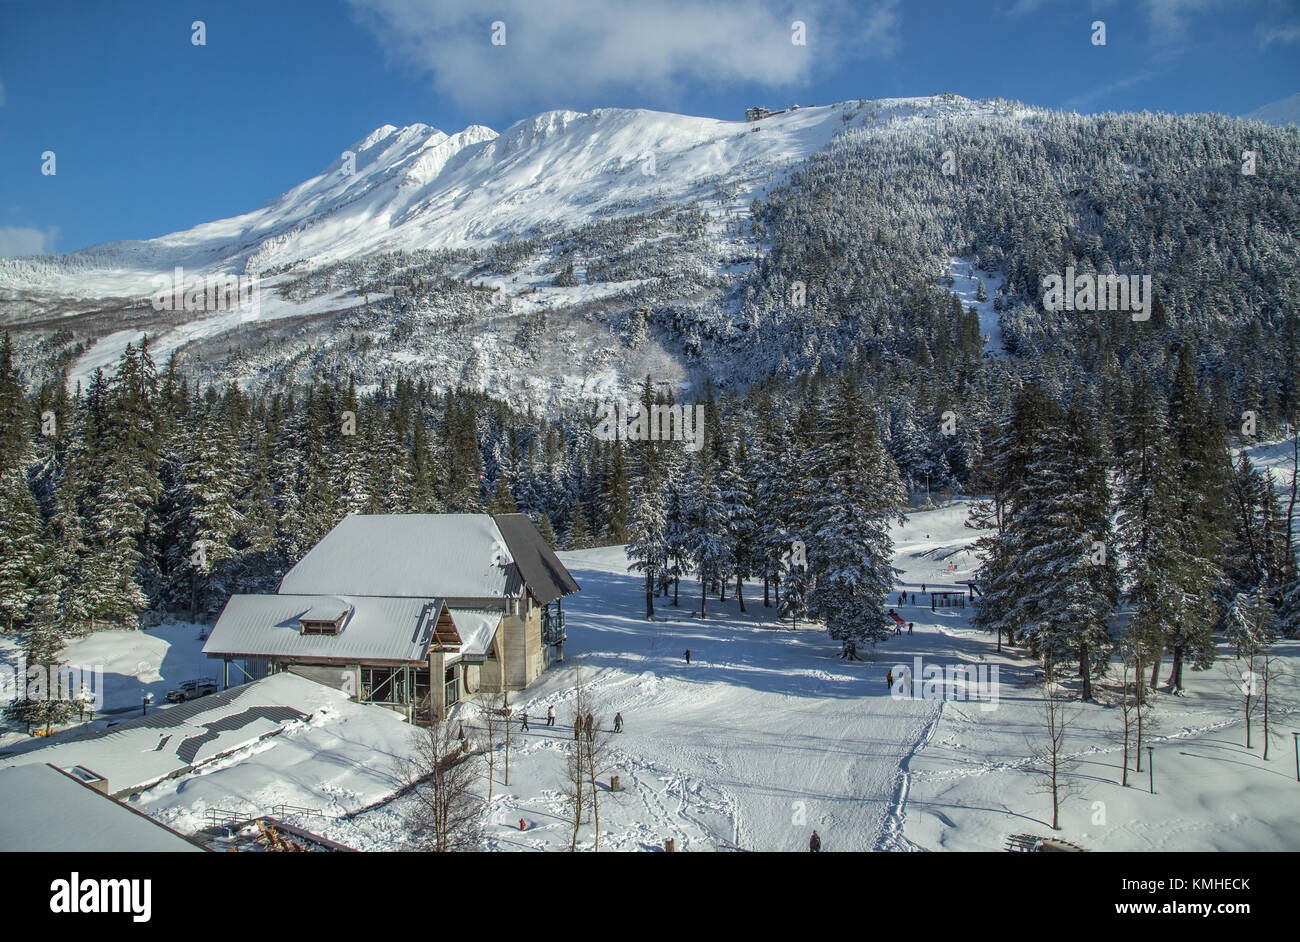 View from the The Alyeska Resort Hotel overlooking the ski runs and cable car in Girdwood, in the Chugach mountains, - Stock Image